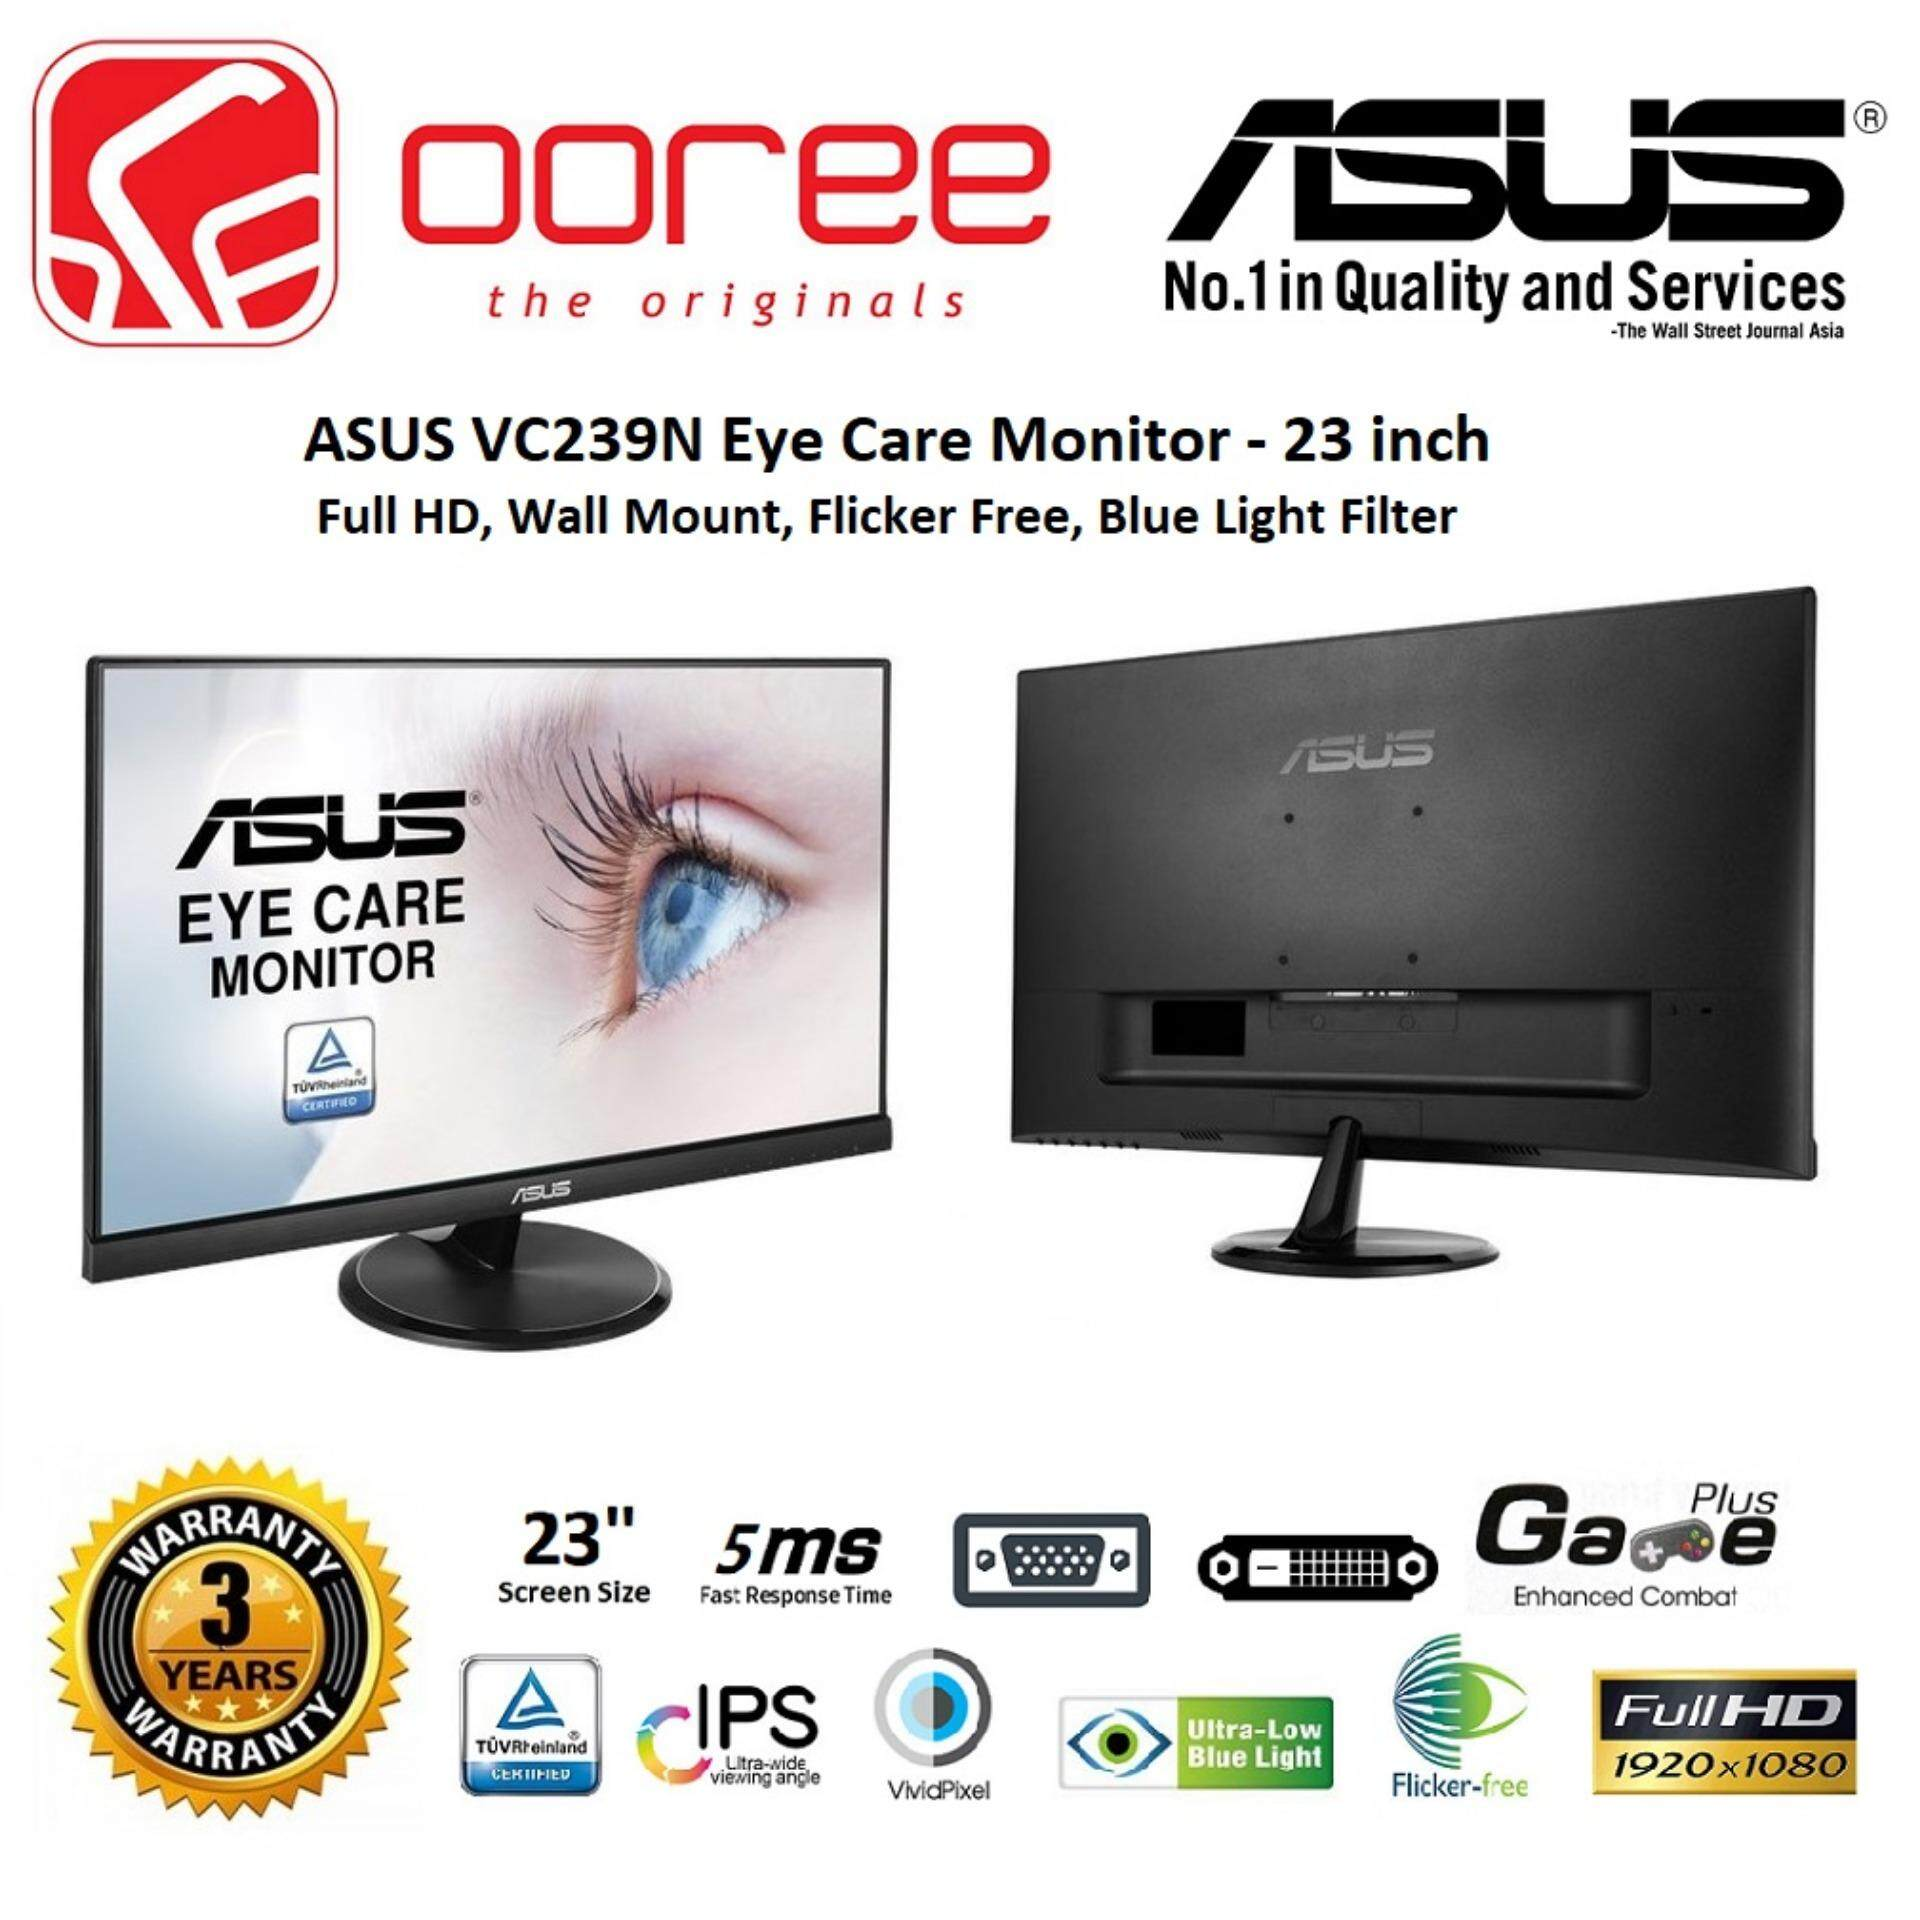 ASUS 23 VC239N LED FLAT HD READY (RESOLUTION: 1920x1080) IPS LCD MONITOR (5MS RESPONSE TIME, DVI INPUT, NO SPEAKER, VESA WALL MOUNT) 3YEARS WARRANTY, BLACK COLOUR Malaysia